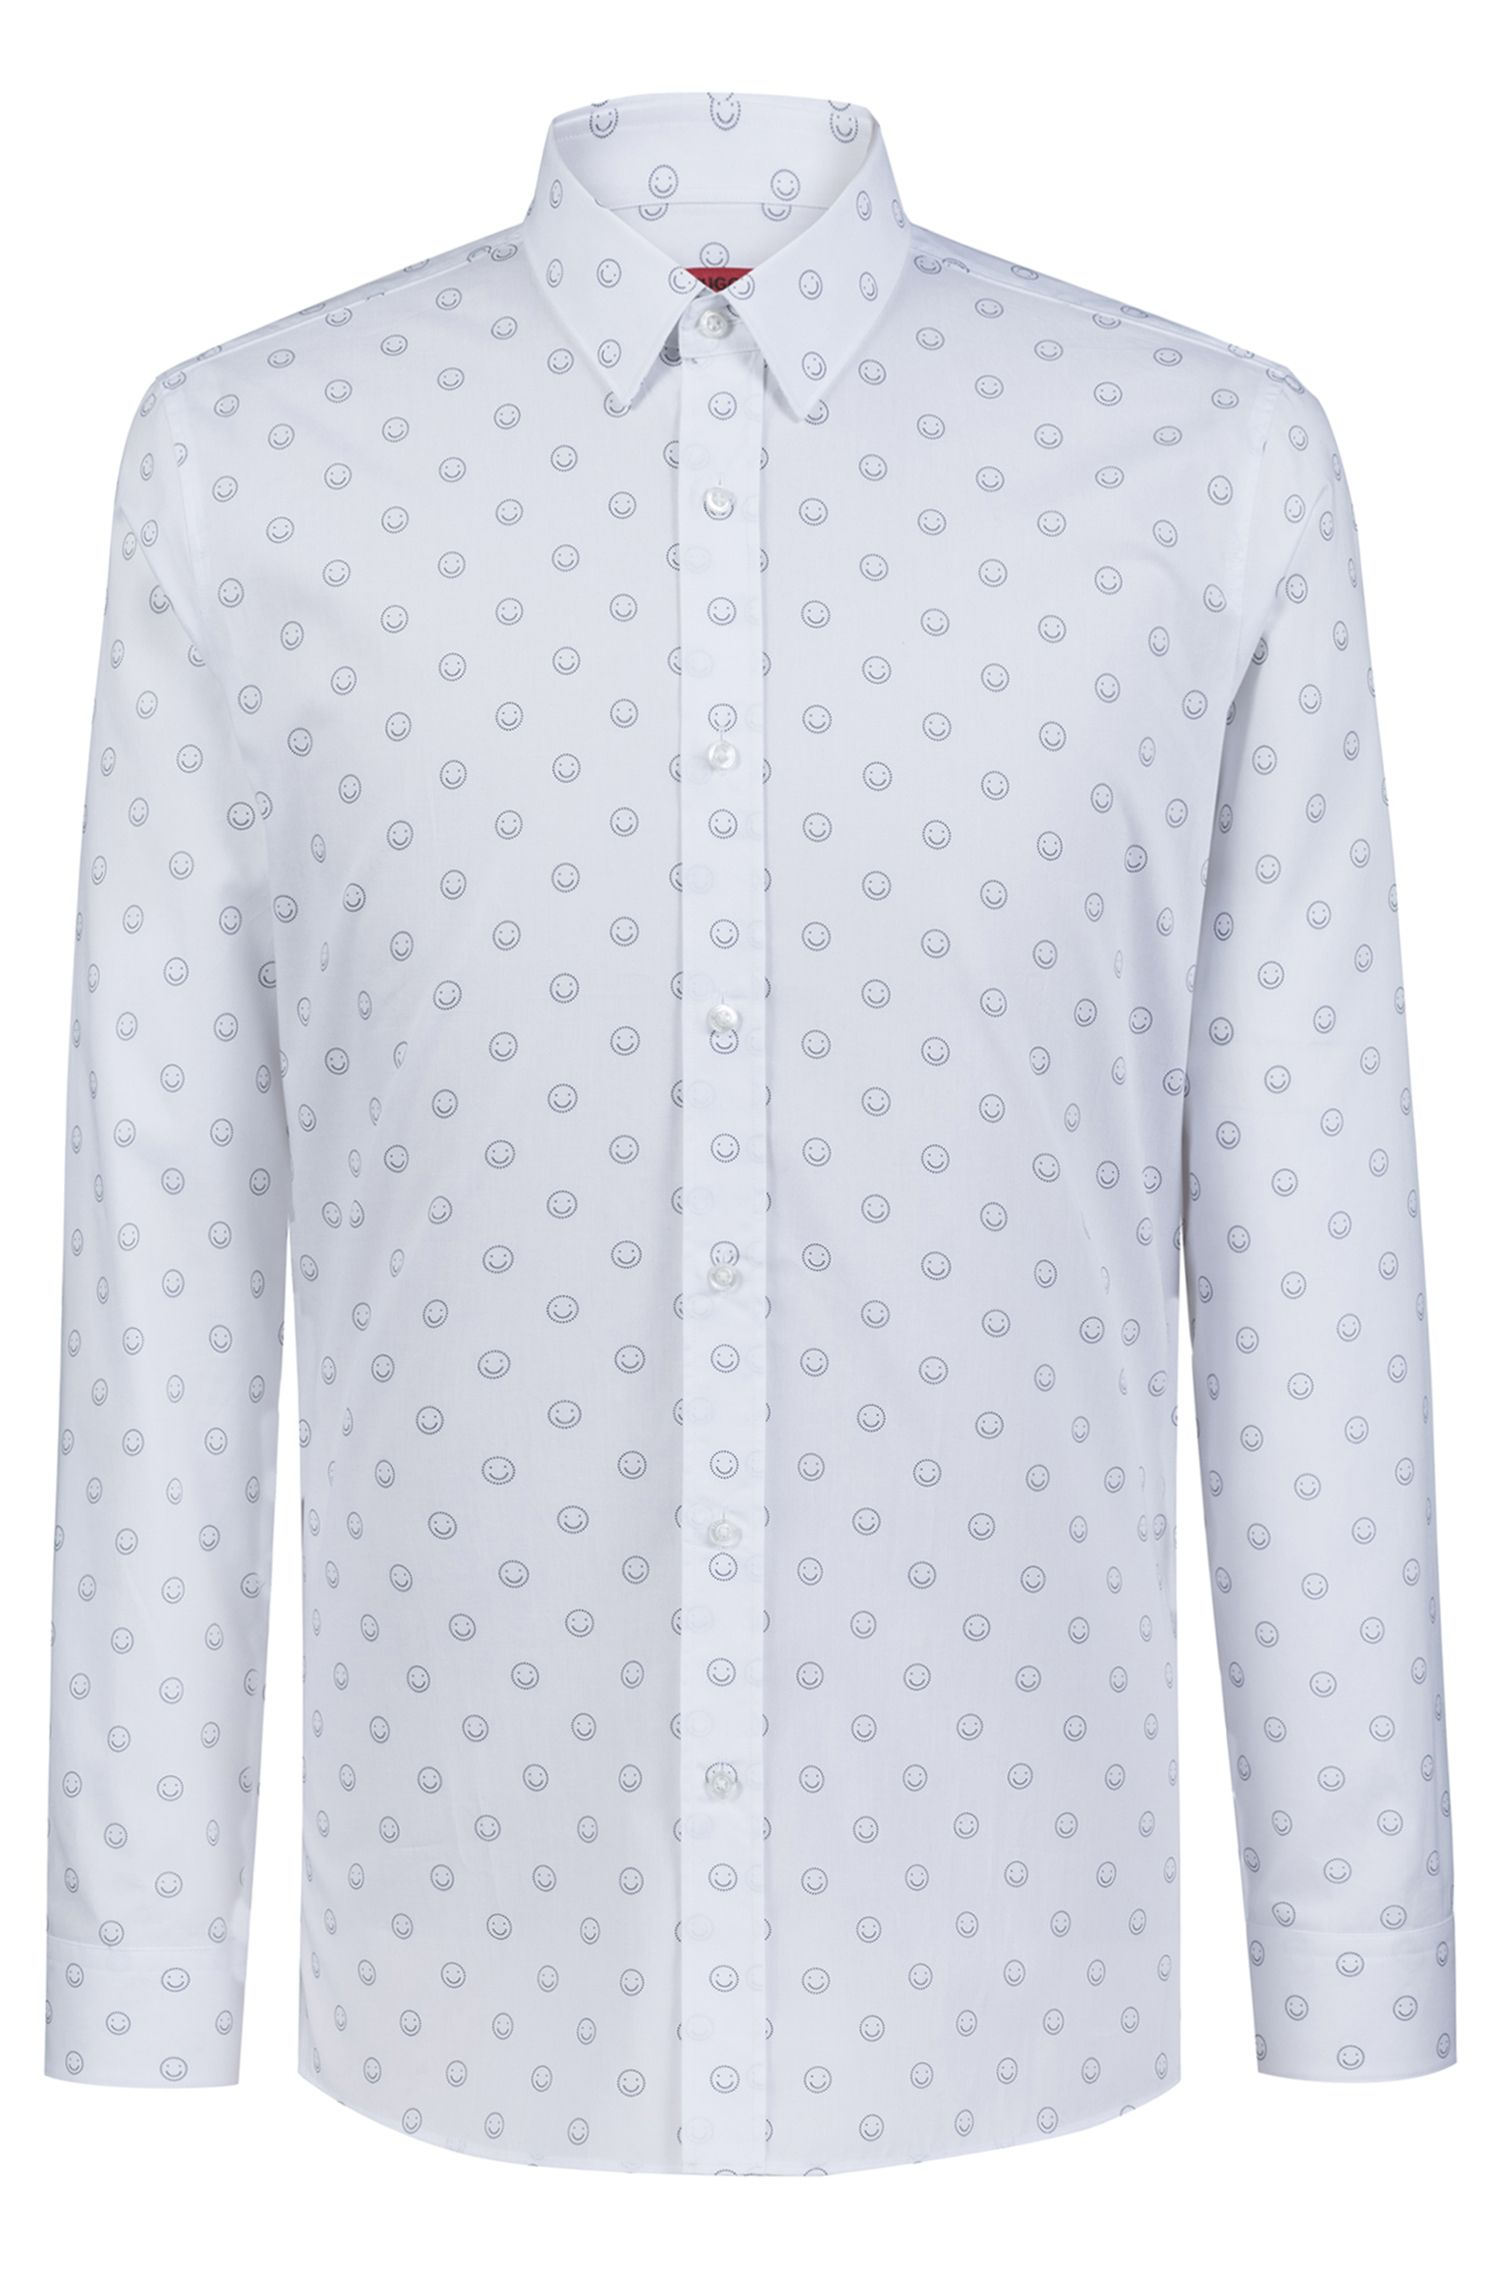 Extra-slim-fit cotton shirt with smiley-face motif, White